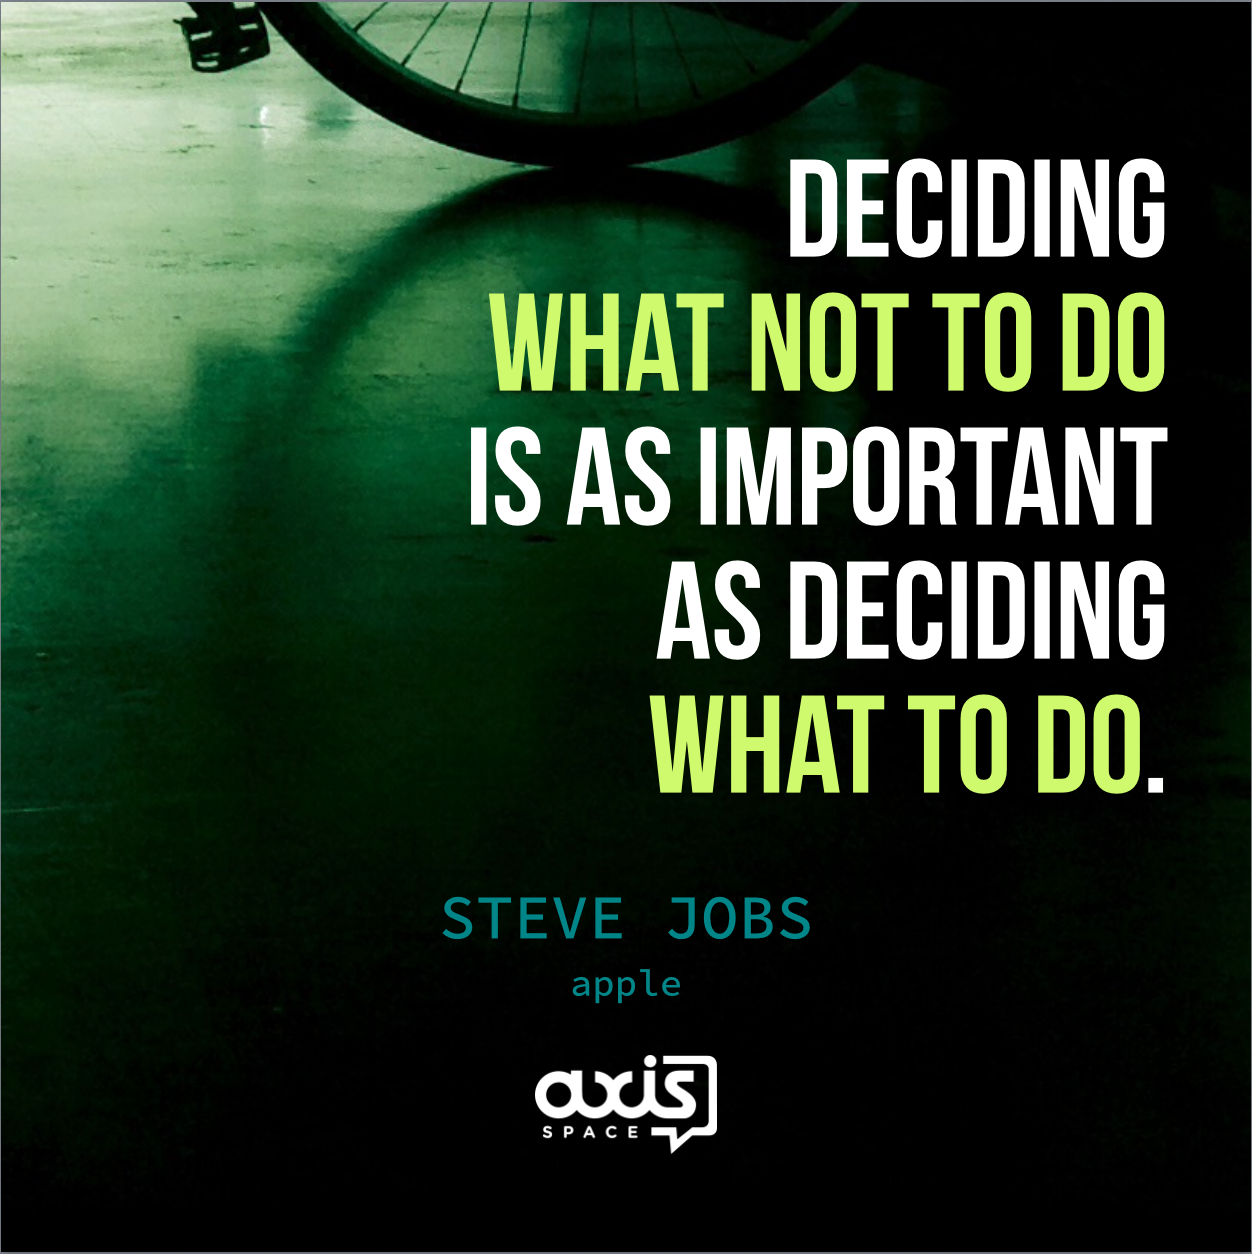 axis-office-space-quotes-steve-jobs